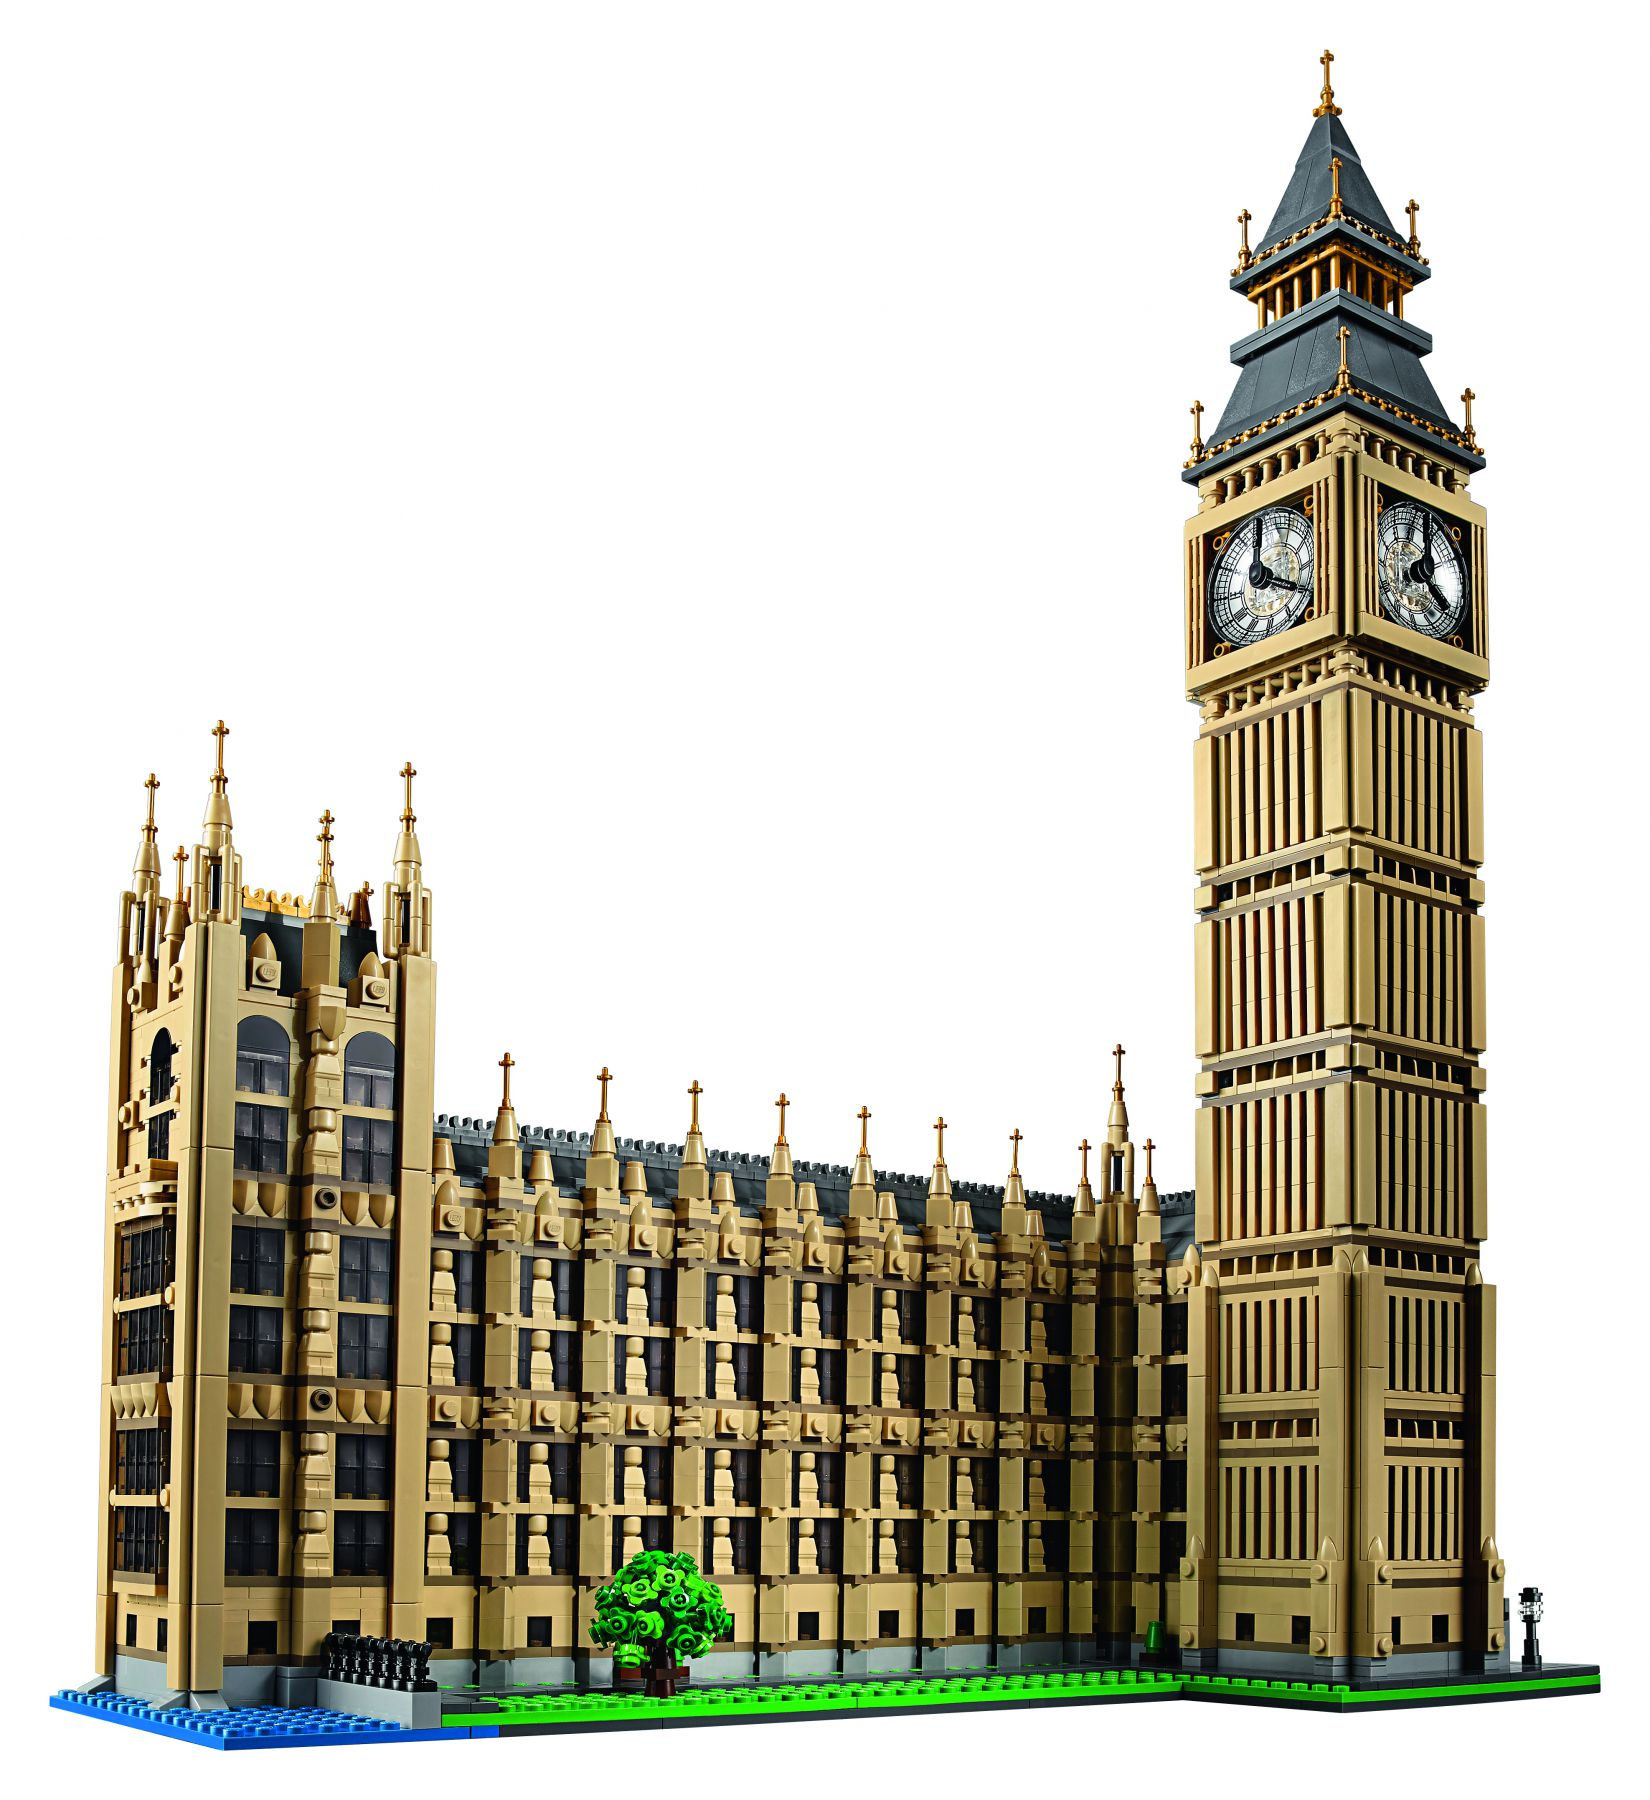 LEGO Advanced Models 10253 Big Ben LEGO_Creator_Big_Ben_10253-16.jpg